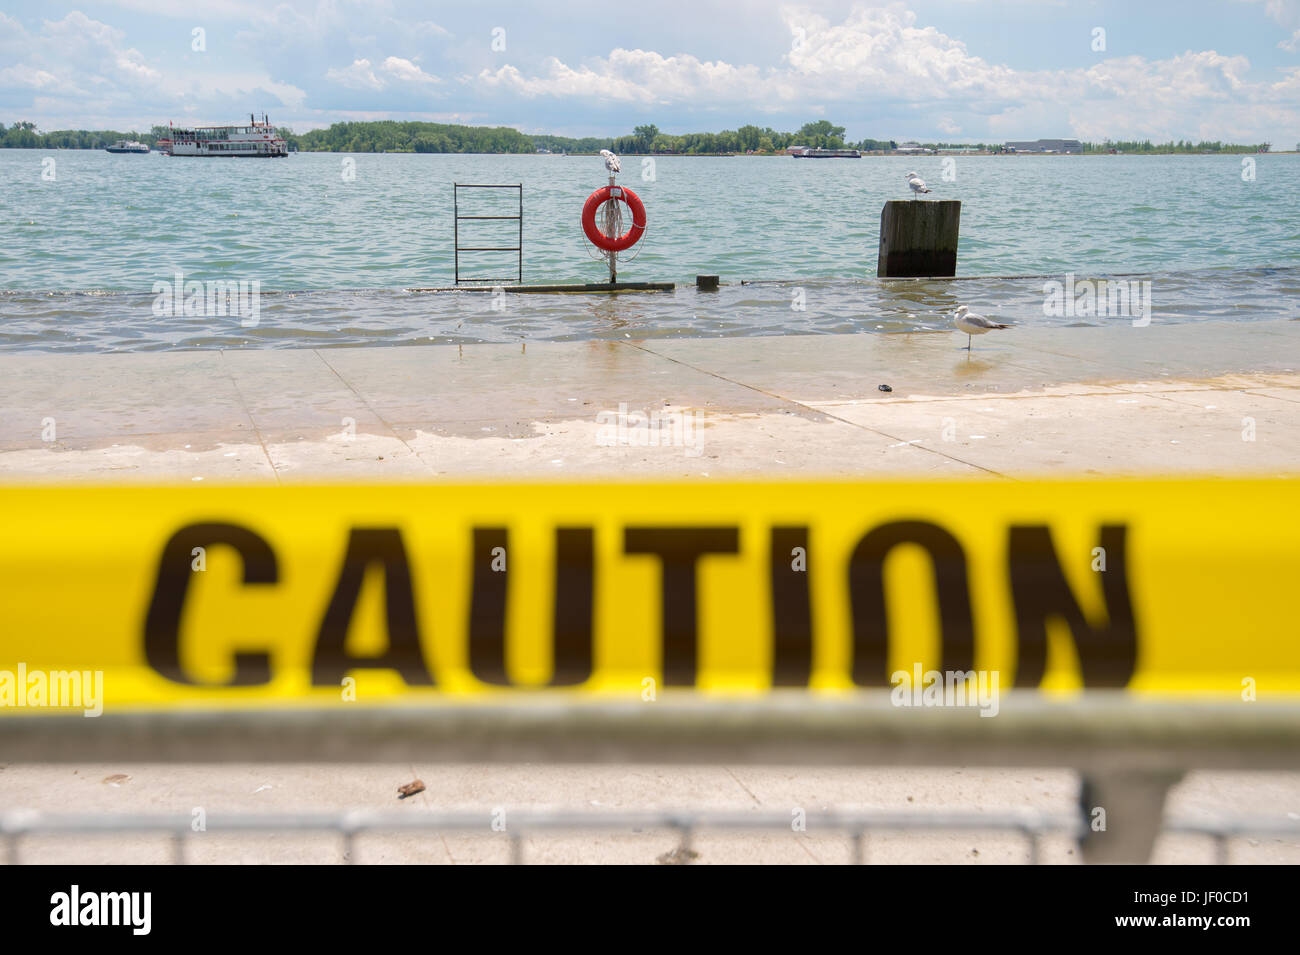 'Caution' yellow tape in front of flooded lakeshore in Toronto - Stock Image